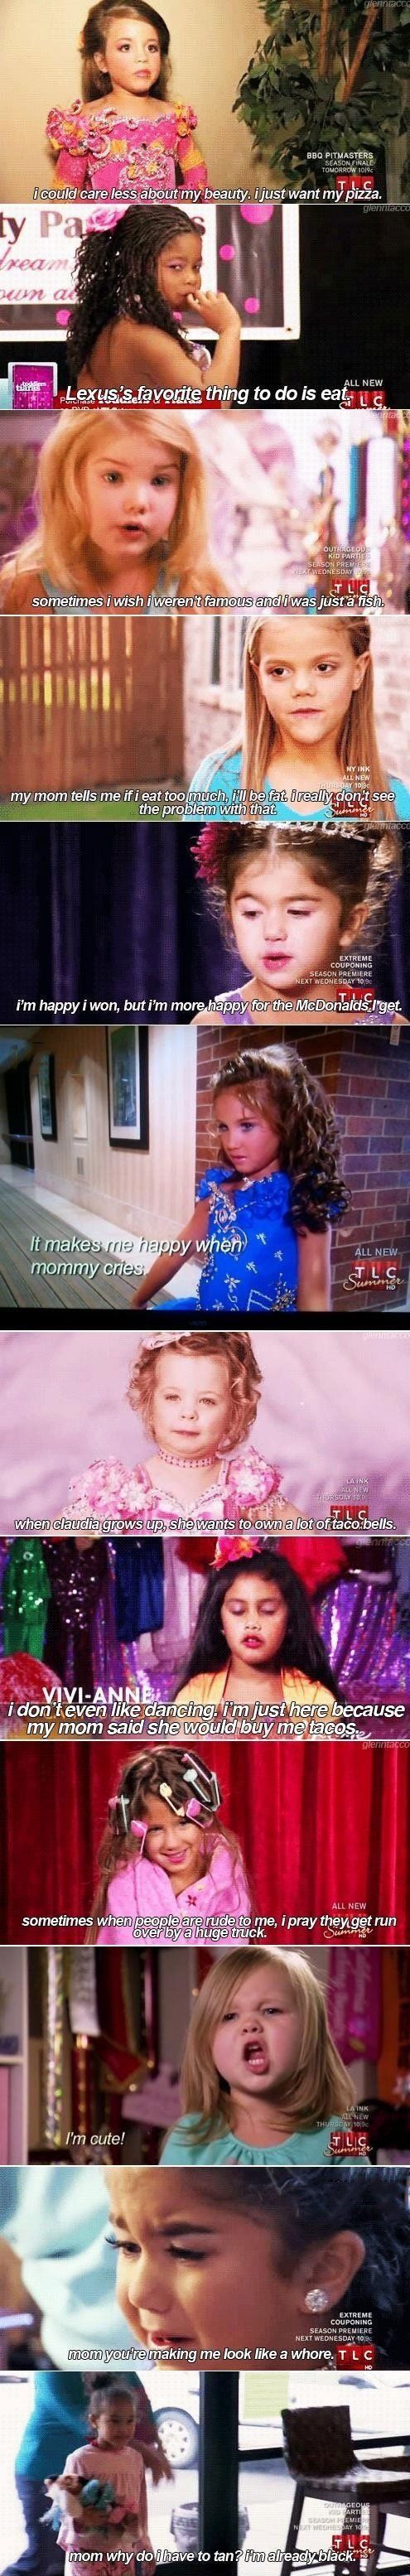 Girls from Toddlers and Tiaras telling the truth…